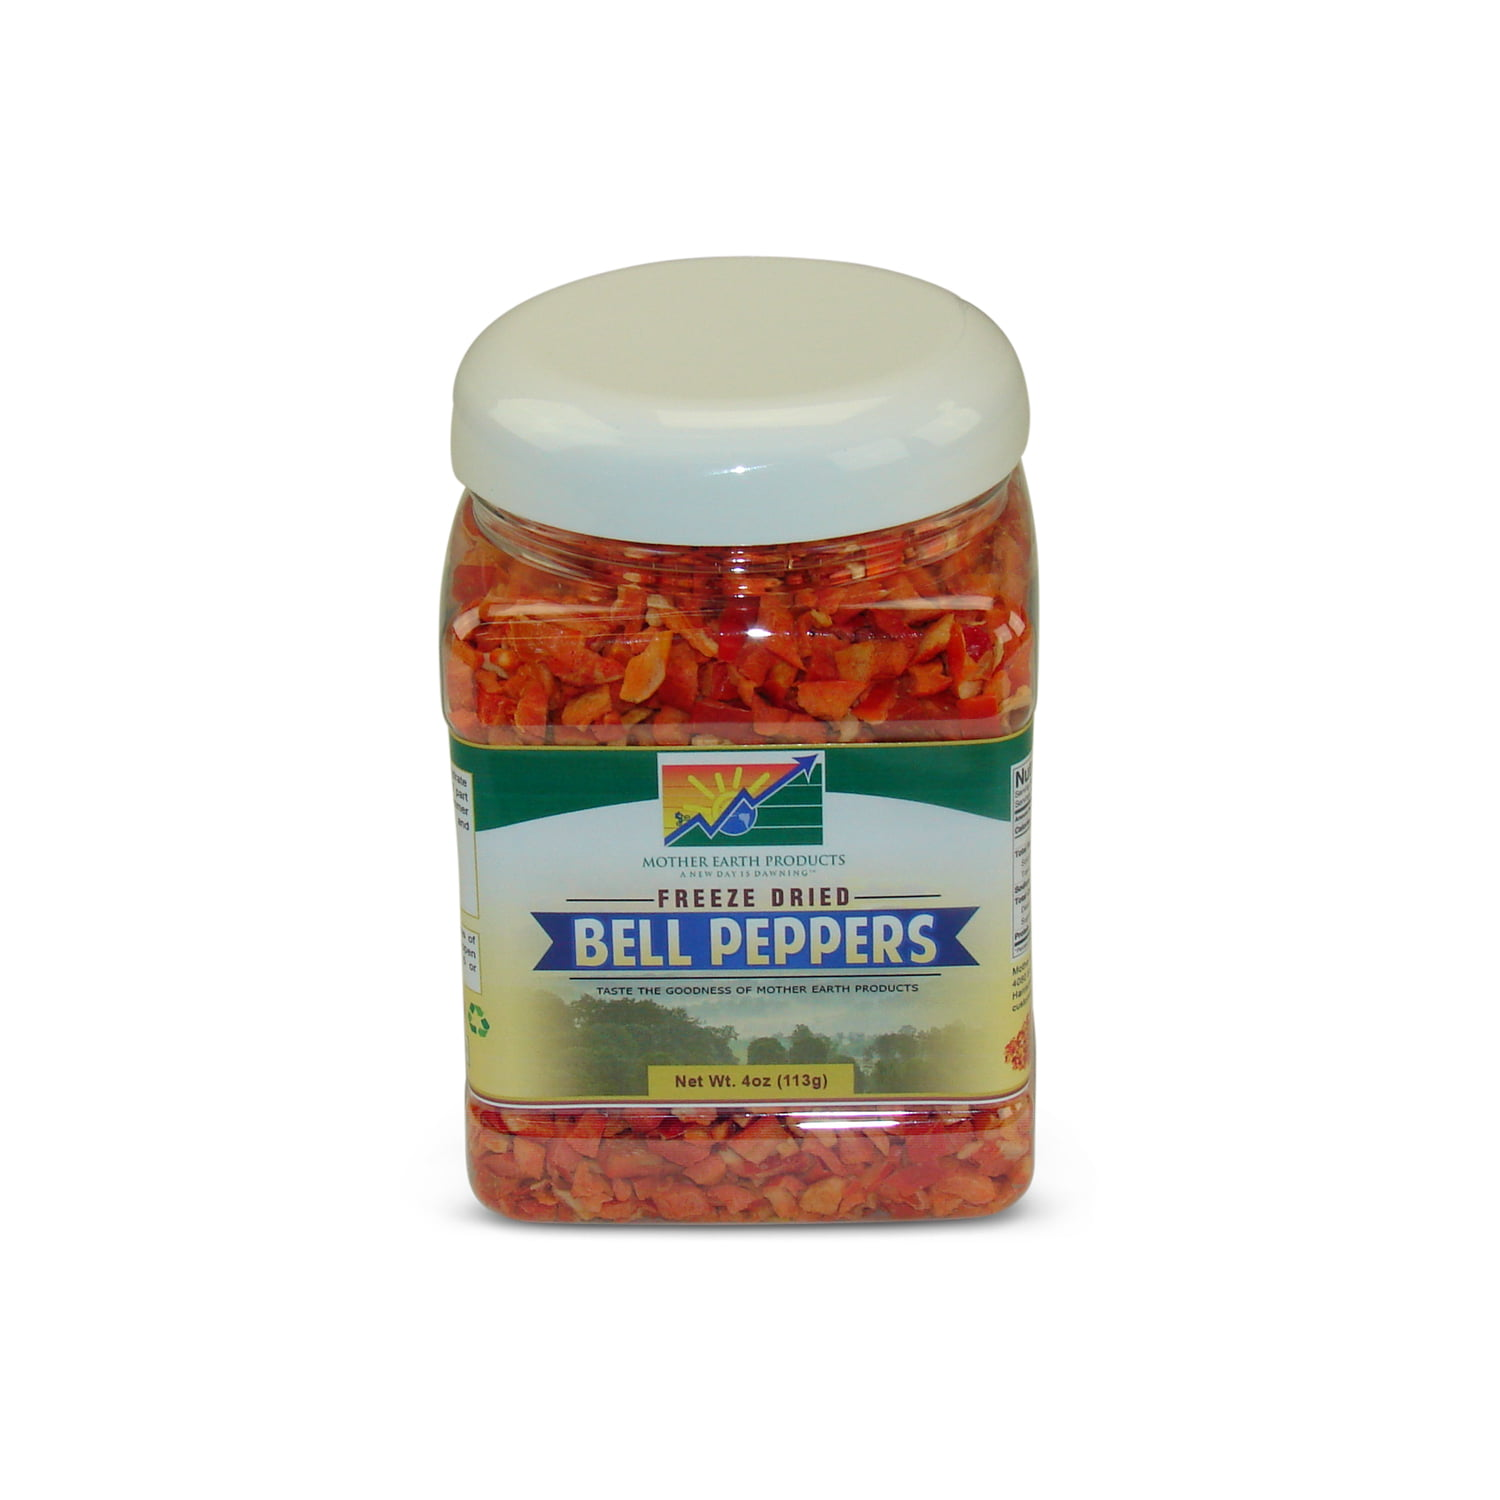 Mother Earth Products Freeze Dried Red Bell Peppers, jar by Mother Earth Products